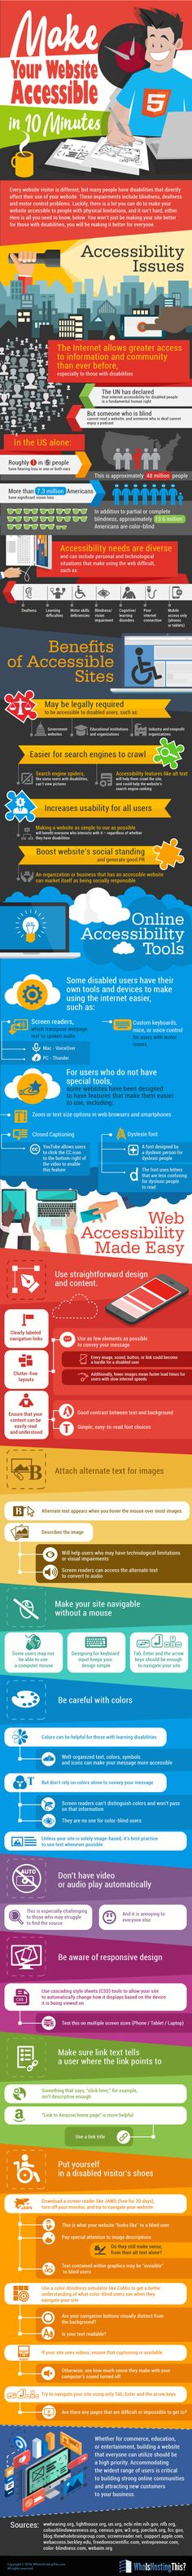 How to Make Your Website Accessible to Visitors With Disabilities #Infographic #WebDesign